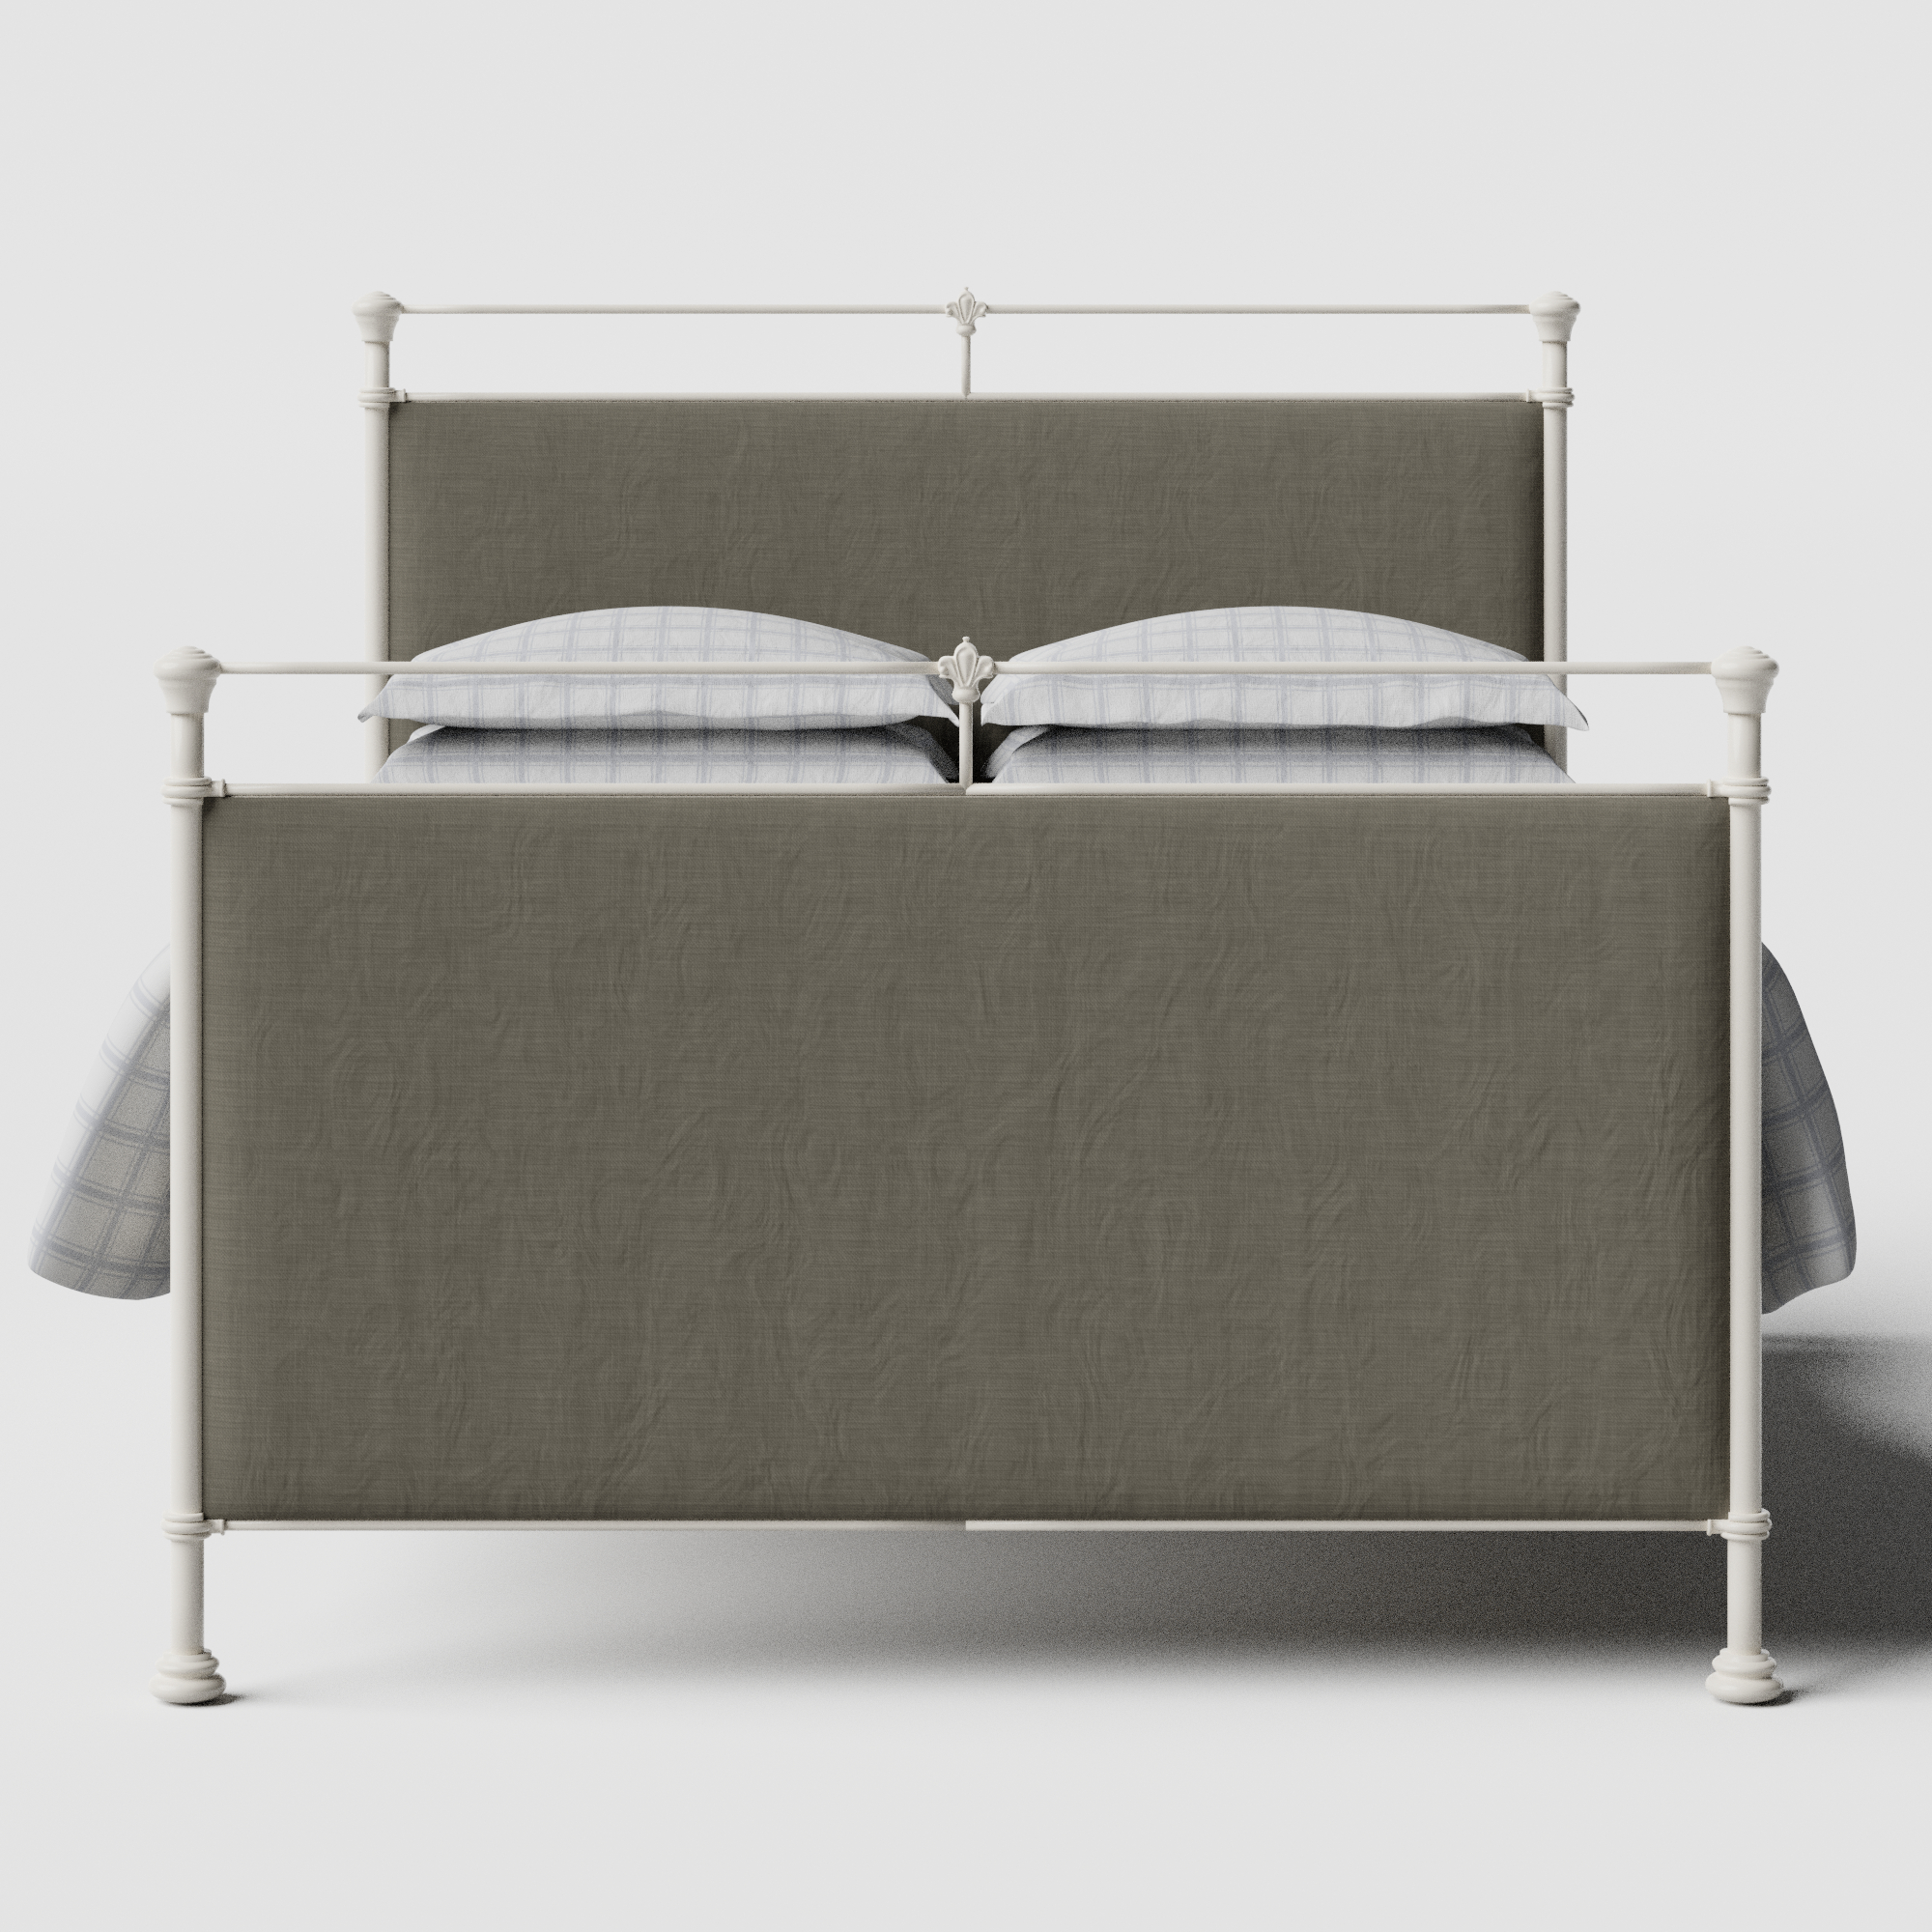 Lille iron/metal upholstered bed in ivory with grey fabric